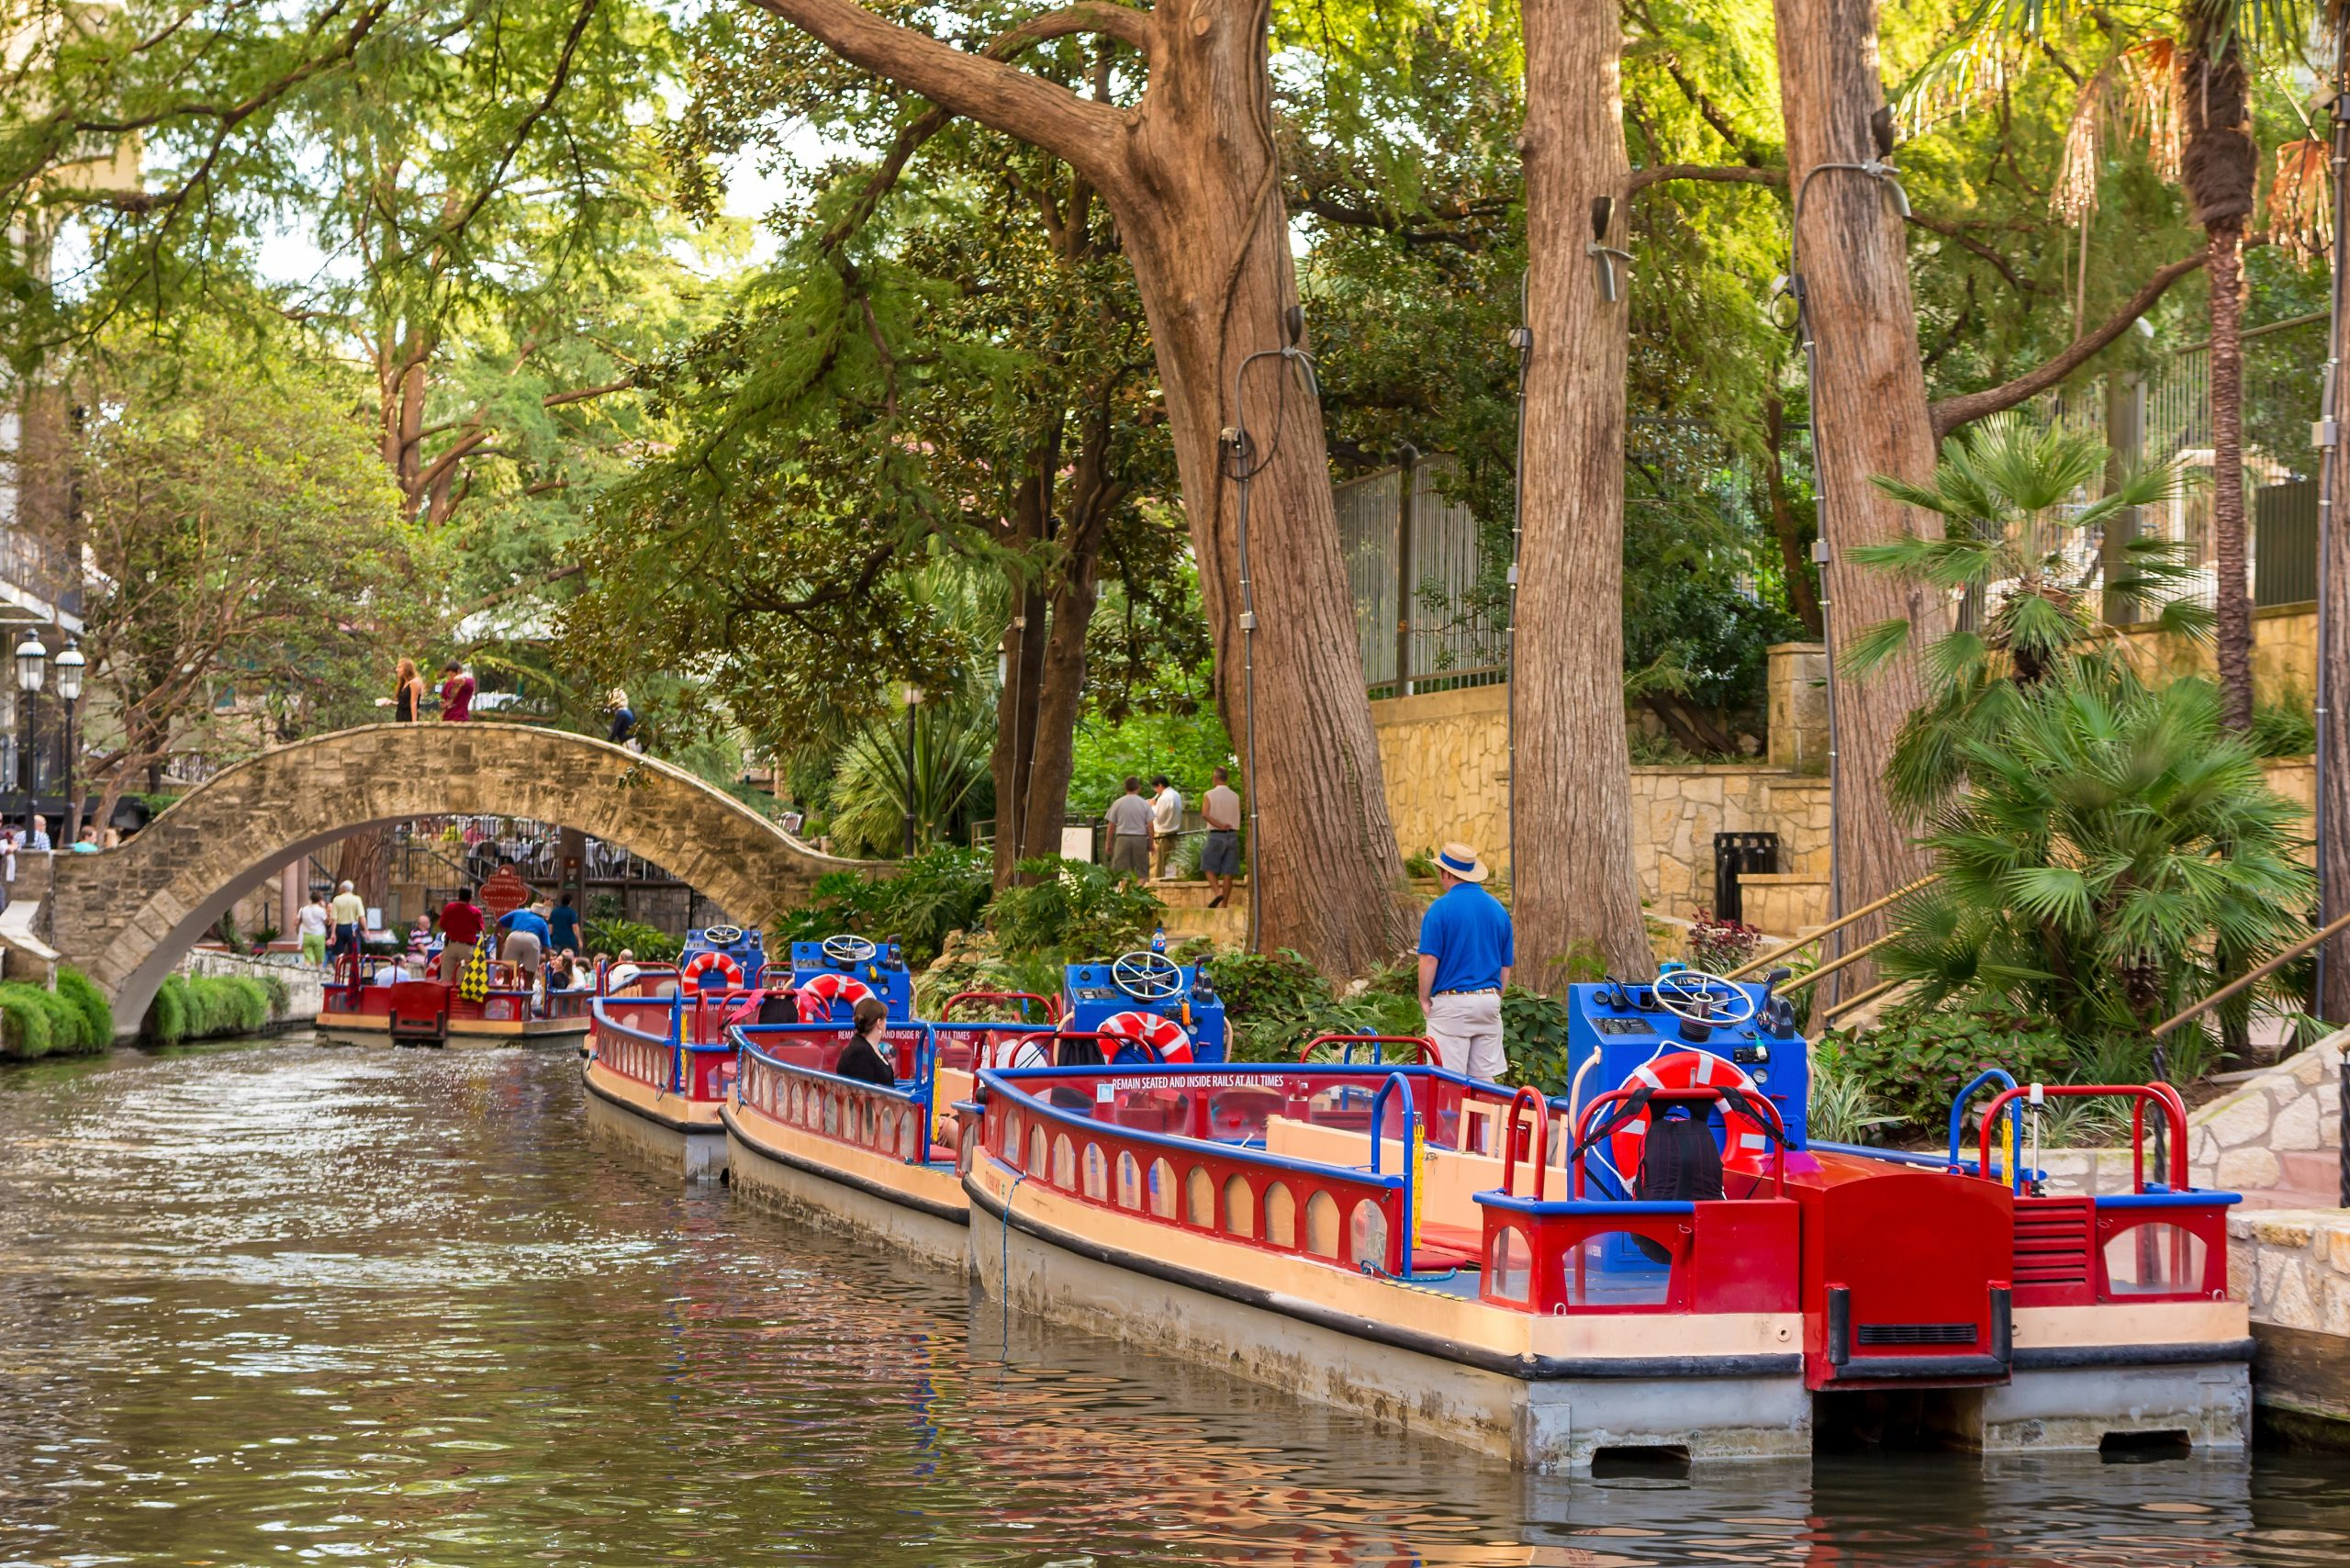 Colorful tourist boats parked along the Riverwalk in San Antonio. The Riverwalk is one of the most instagrammable places in San Antonio